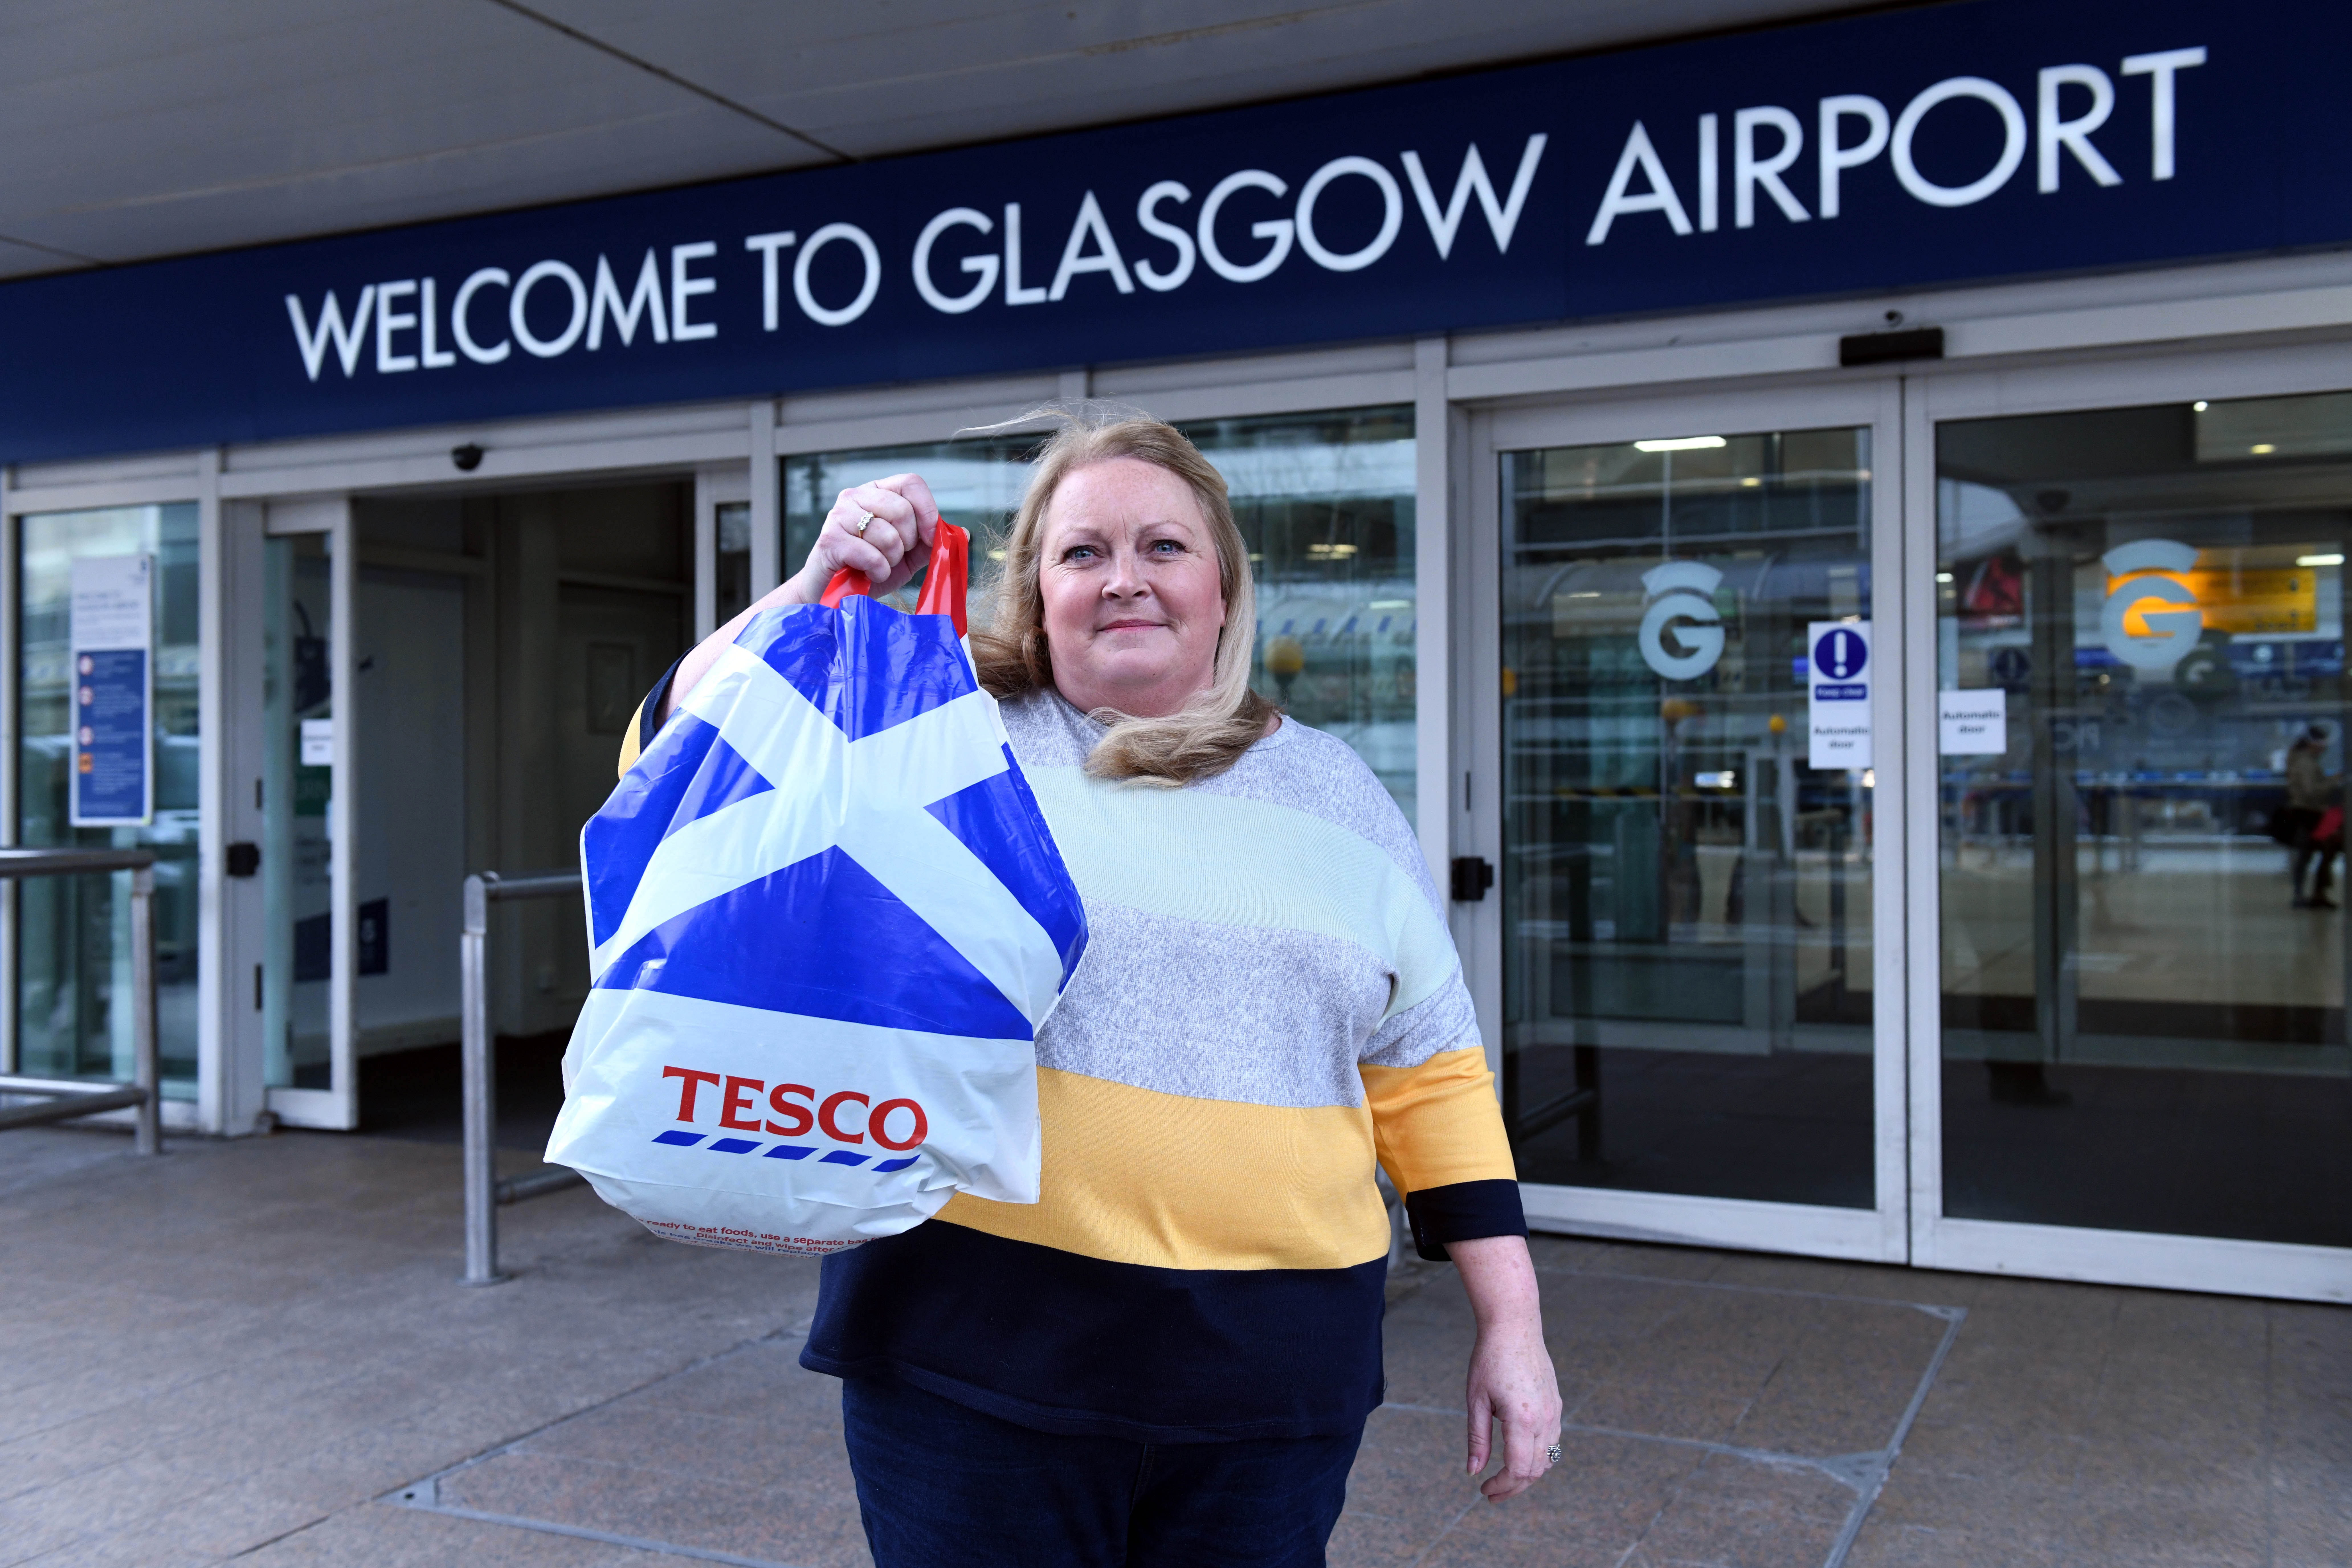 Clare Anderson had to use a Tesco carrier bag instead of her specially purchased case